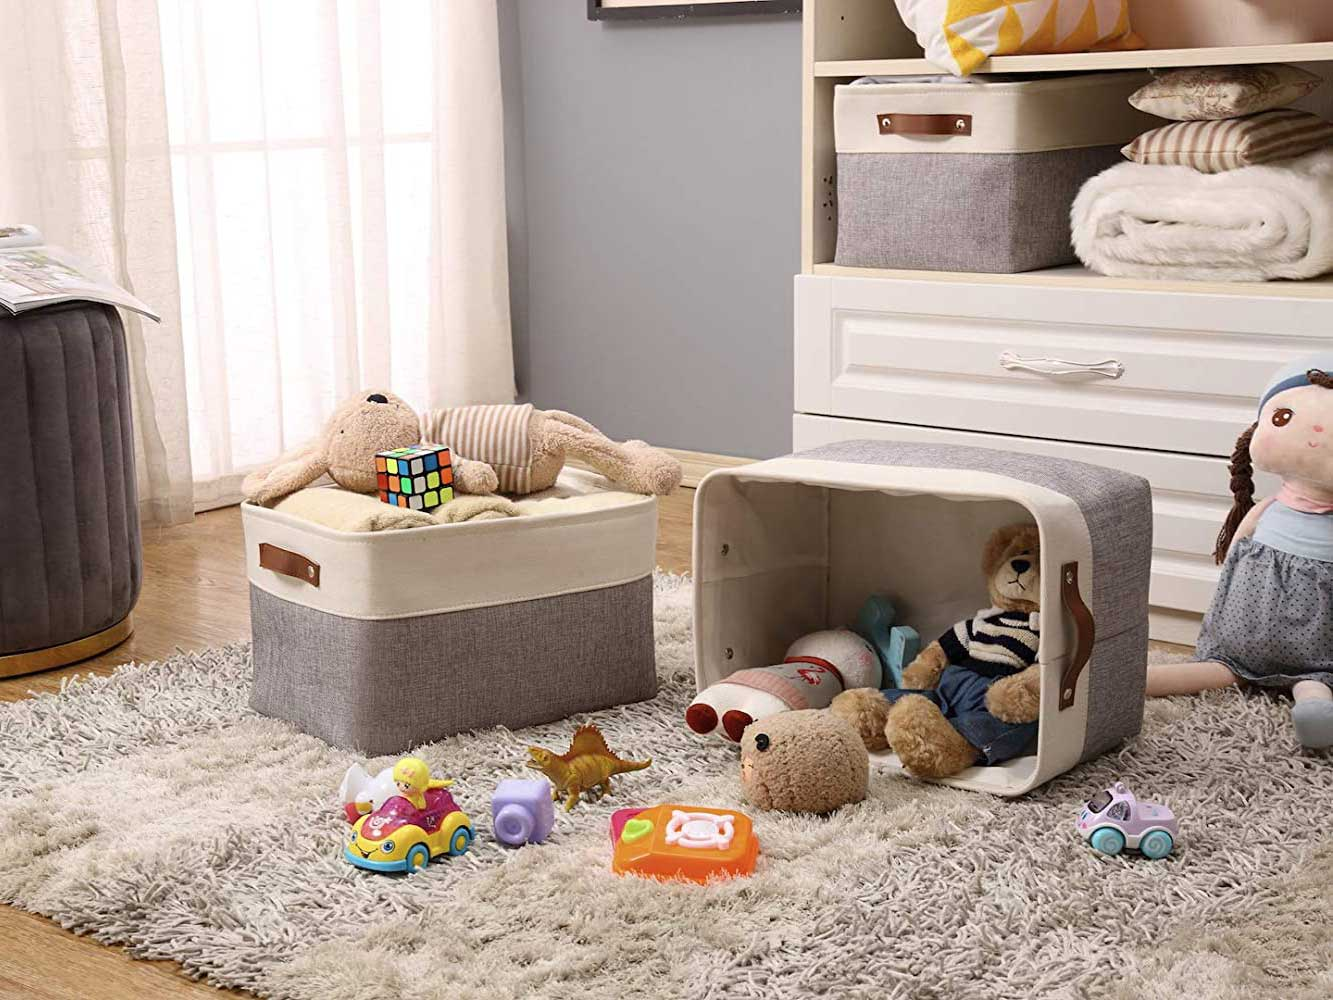 Toys in baskets